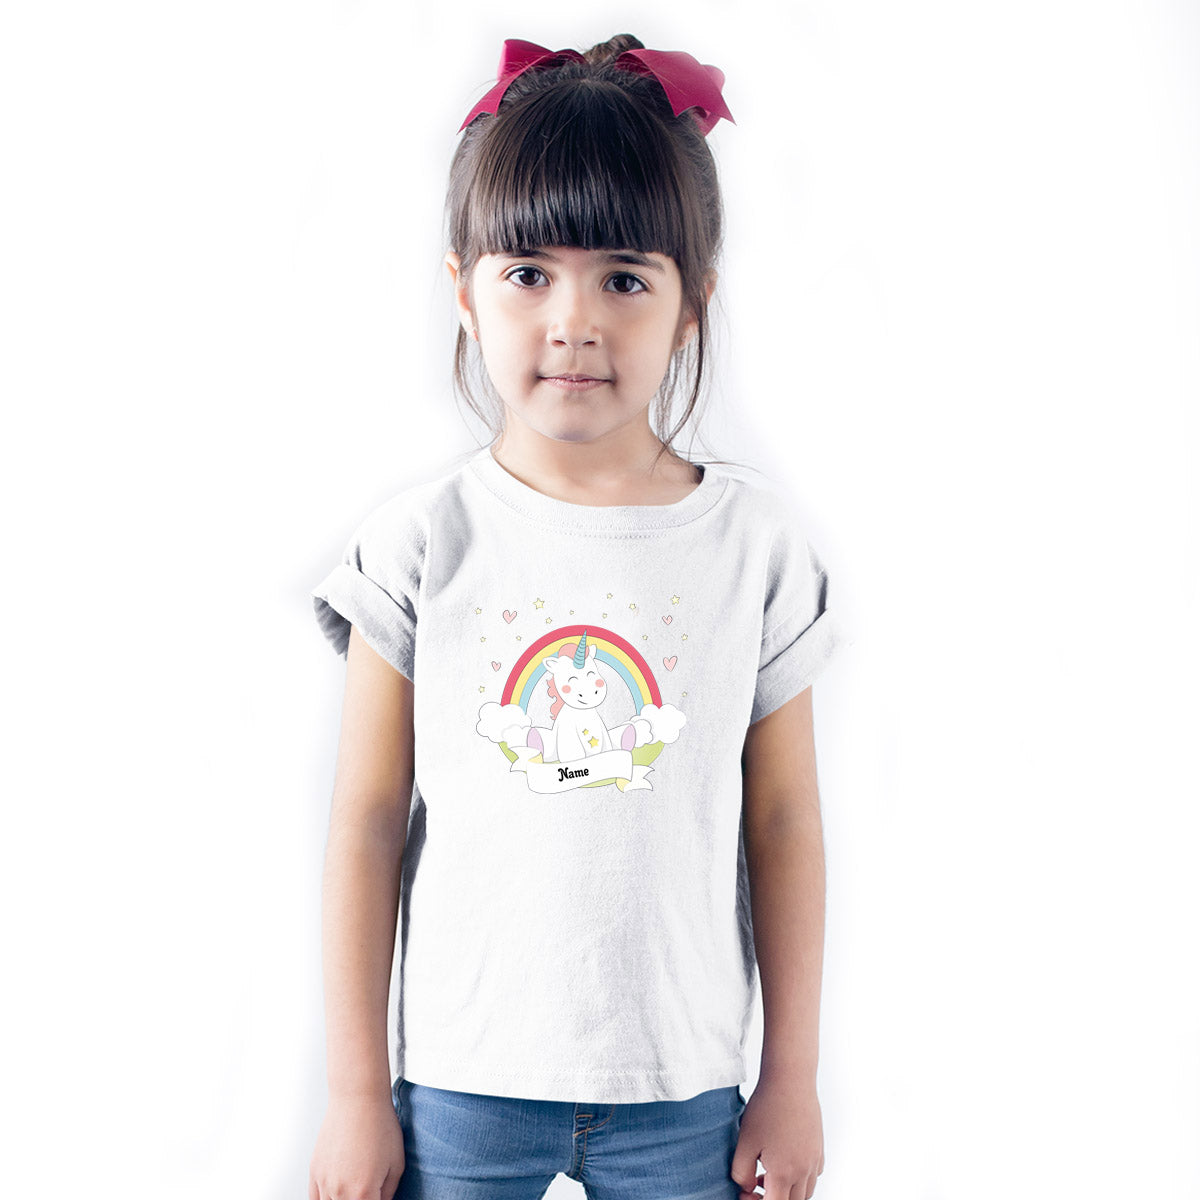 Sprinklecart Custom Name and Age Printed Unicorn Kids Poly-Cotton T Shirt (White)